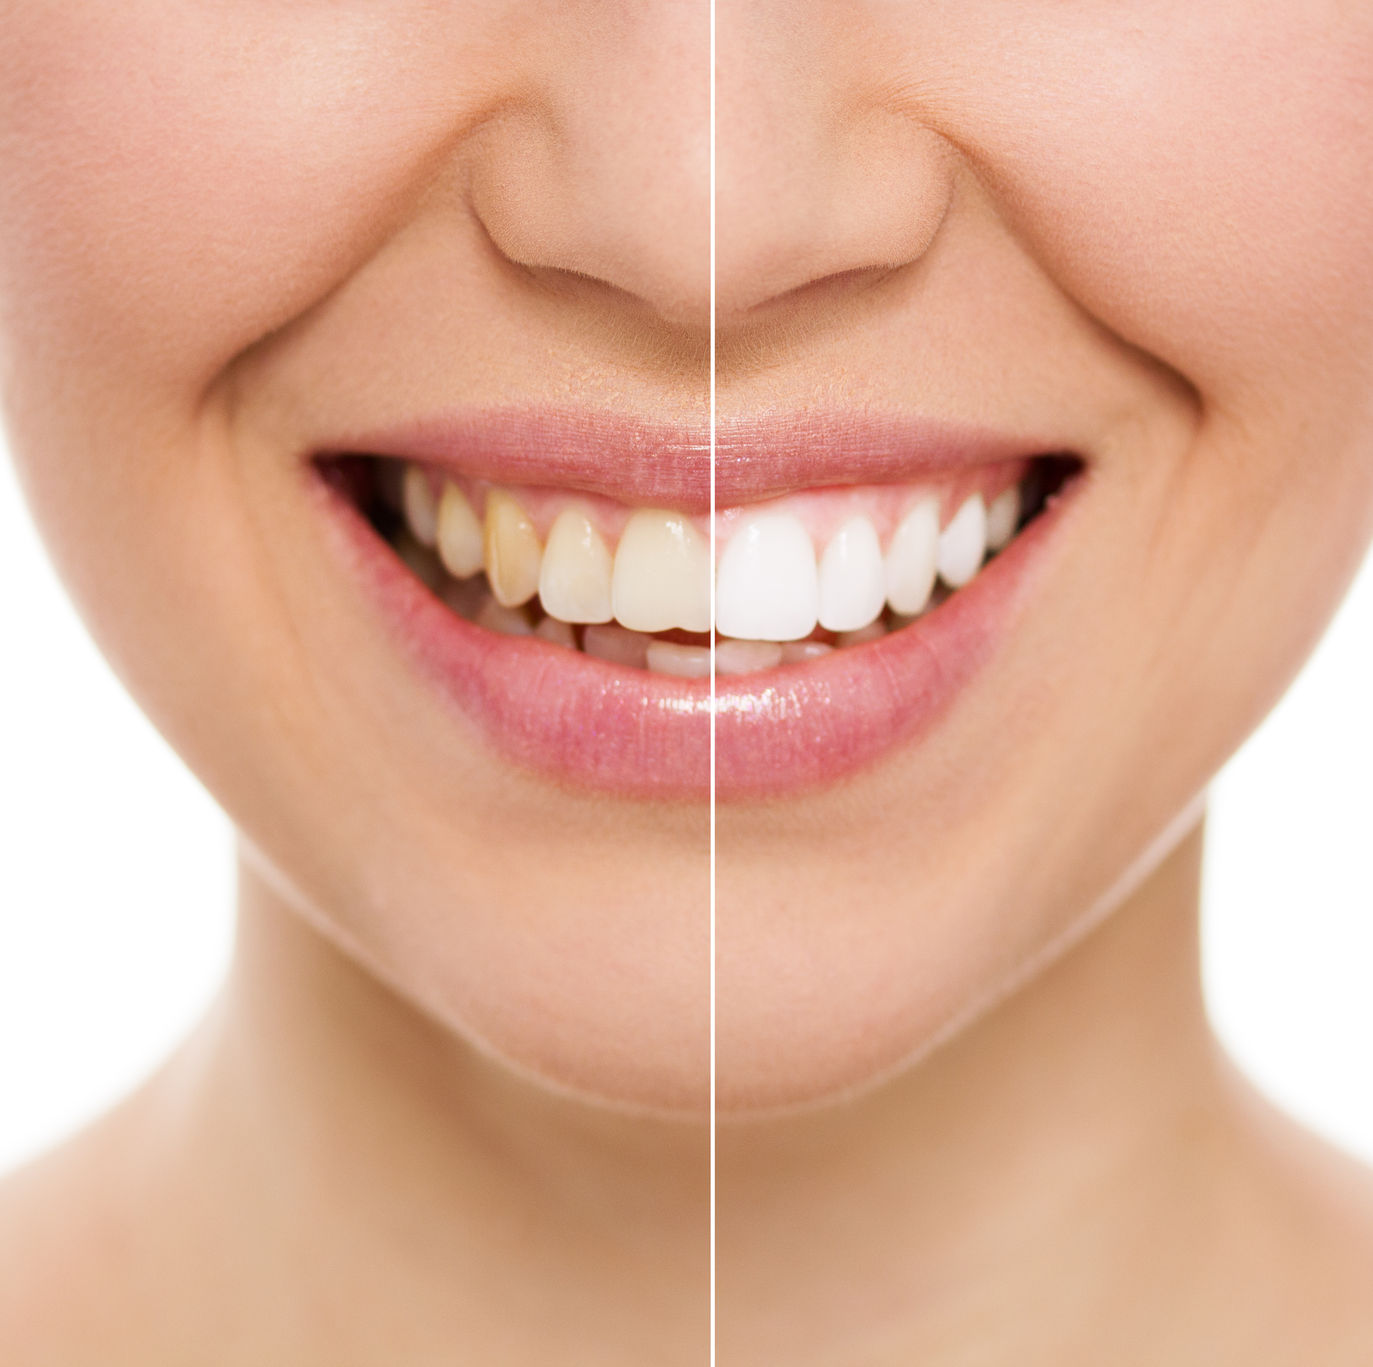 wsd-before-and-after-whitening-results.jpg